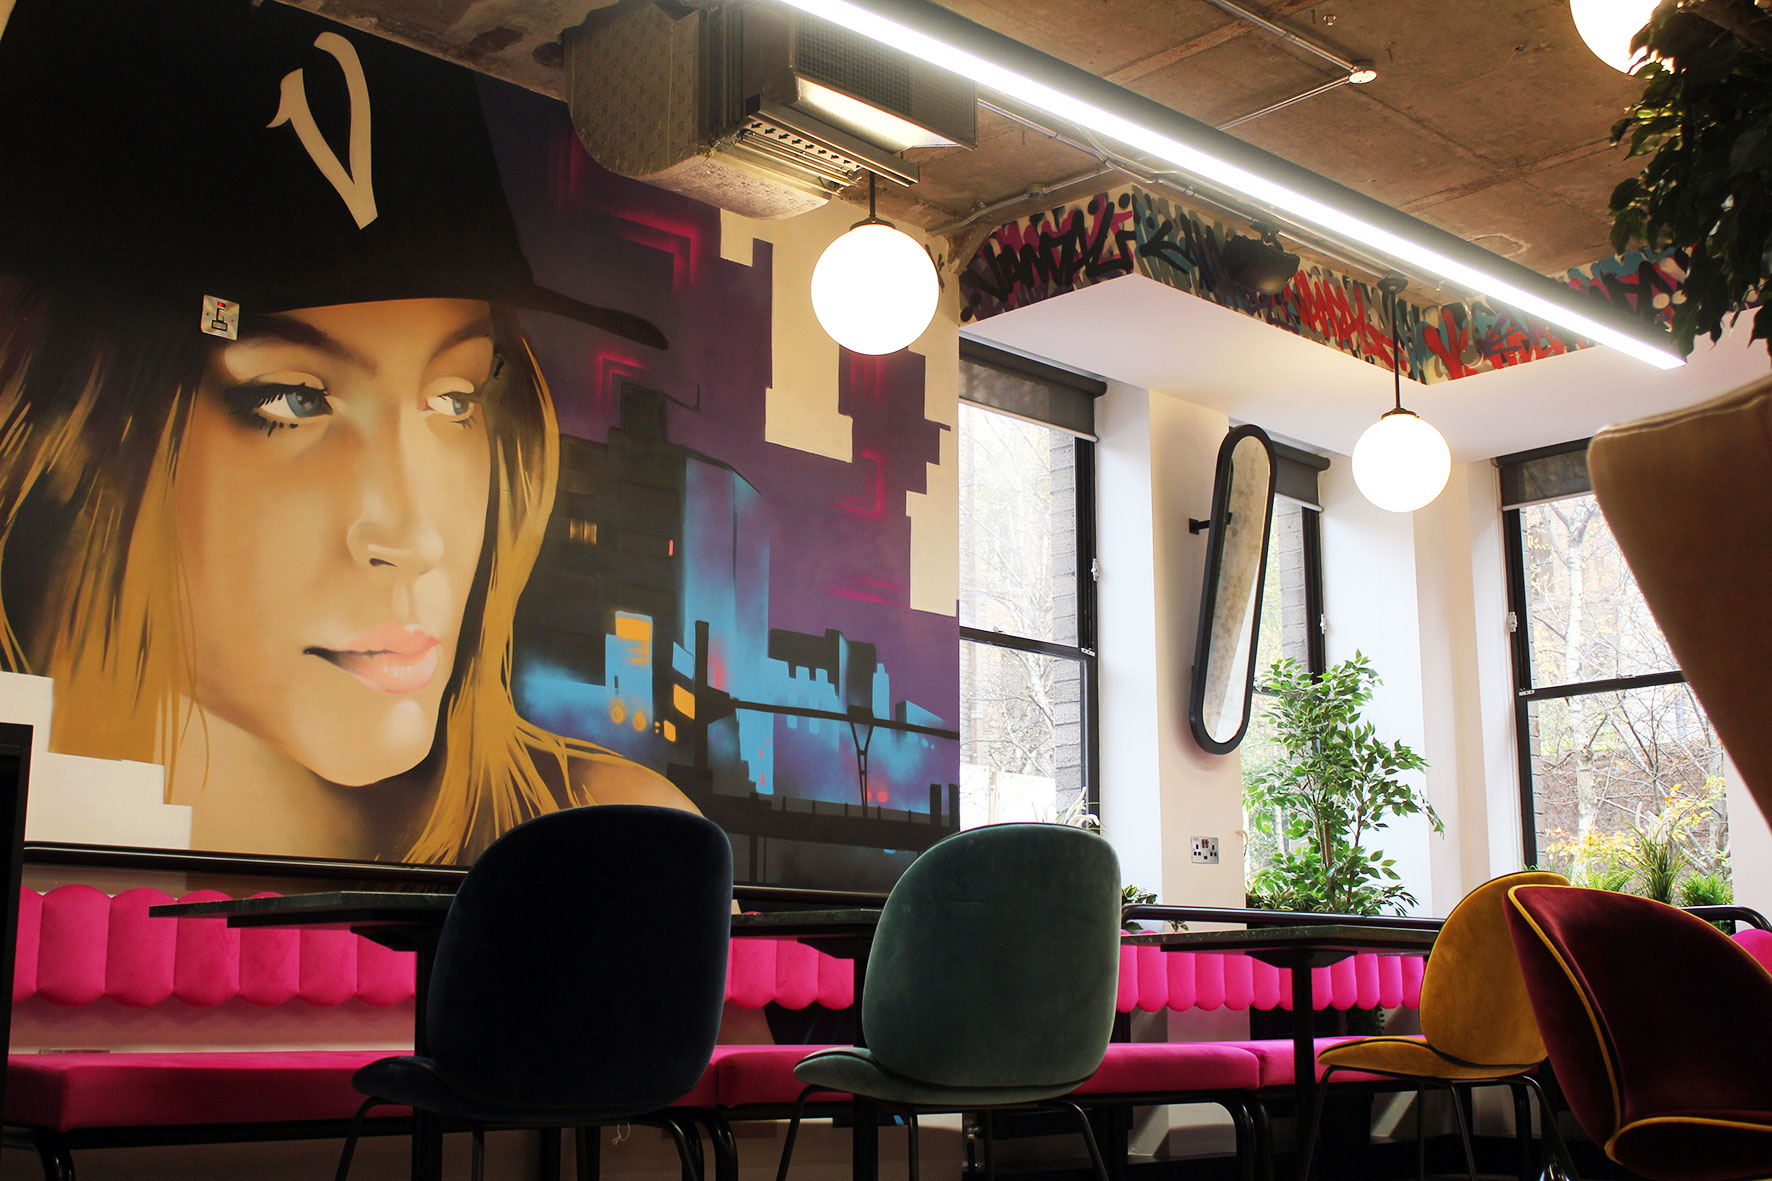 Vandas-Omin Artwork__Iconic Offices_The Greenway Building_Vandal Cafe_4.jpg